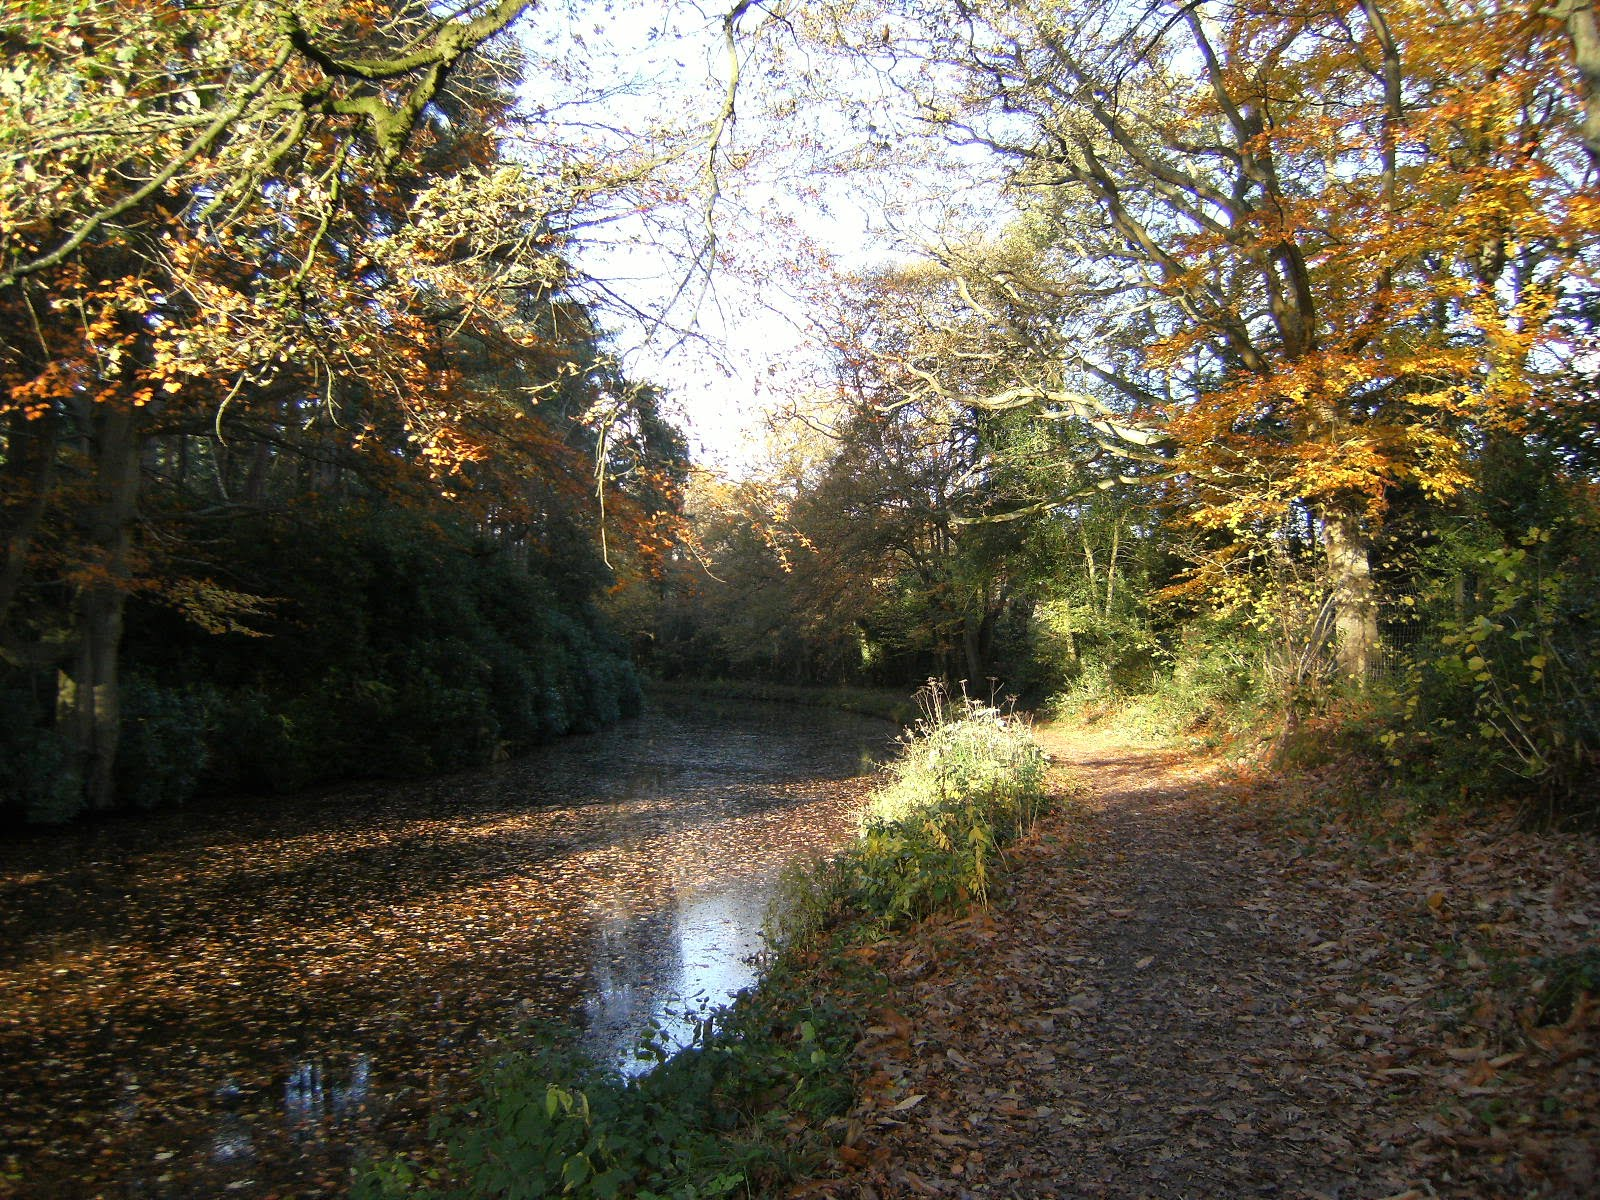 DSCF2661 Basingstoke Canal near Barley Mow Bridge